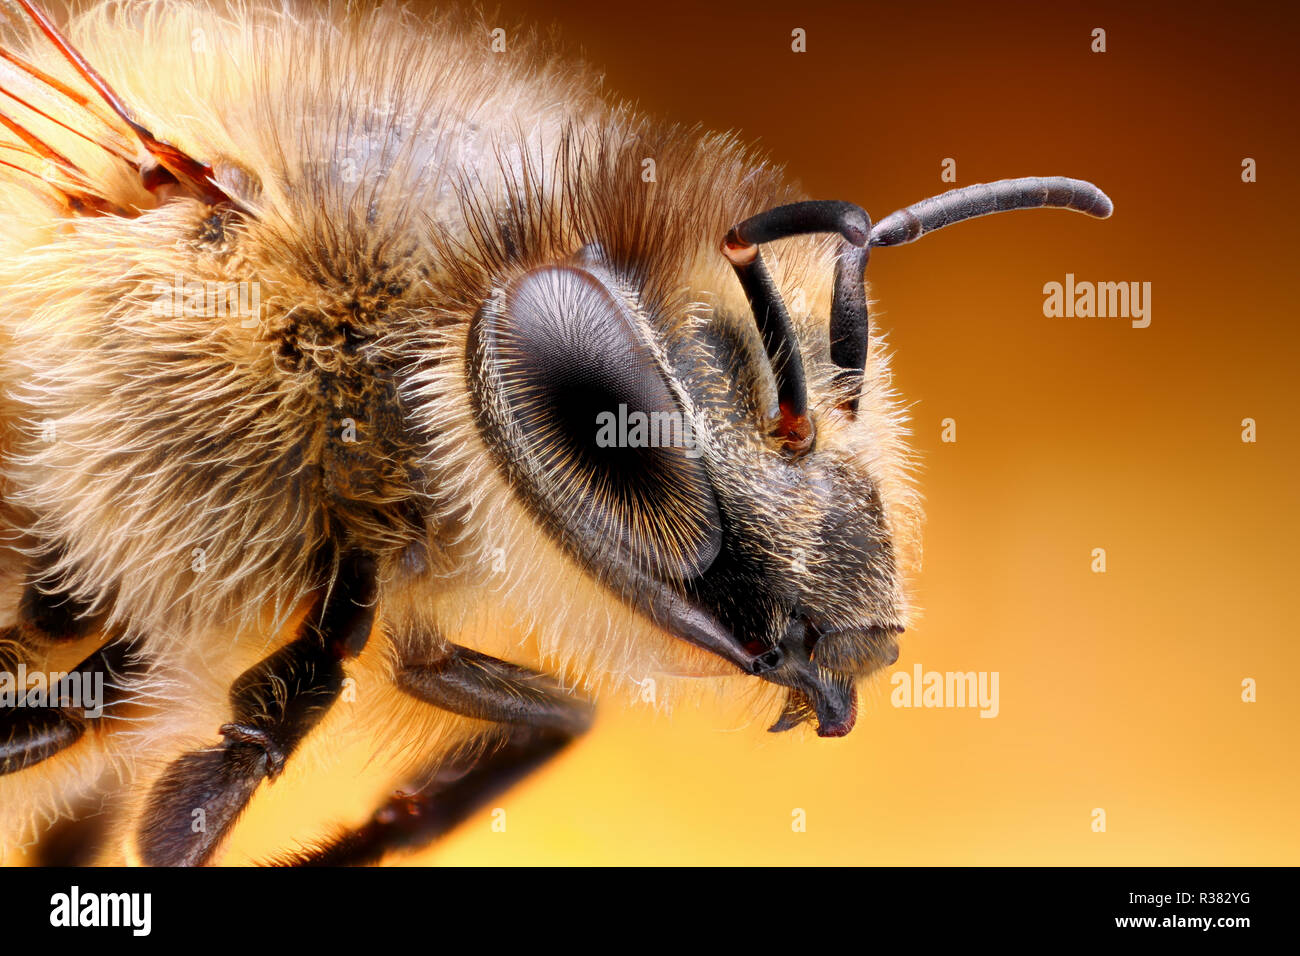 Extremely sharp and detailed study of a Bee head taken with a macro lens stacked from many images into one very sharp photo. - Stock Image